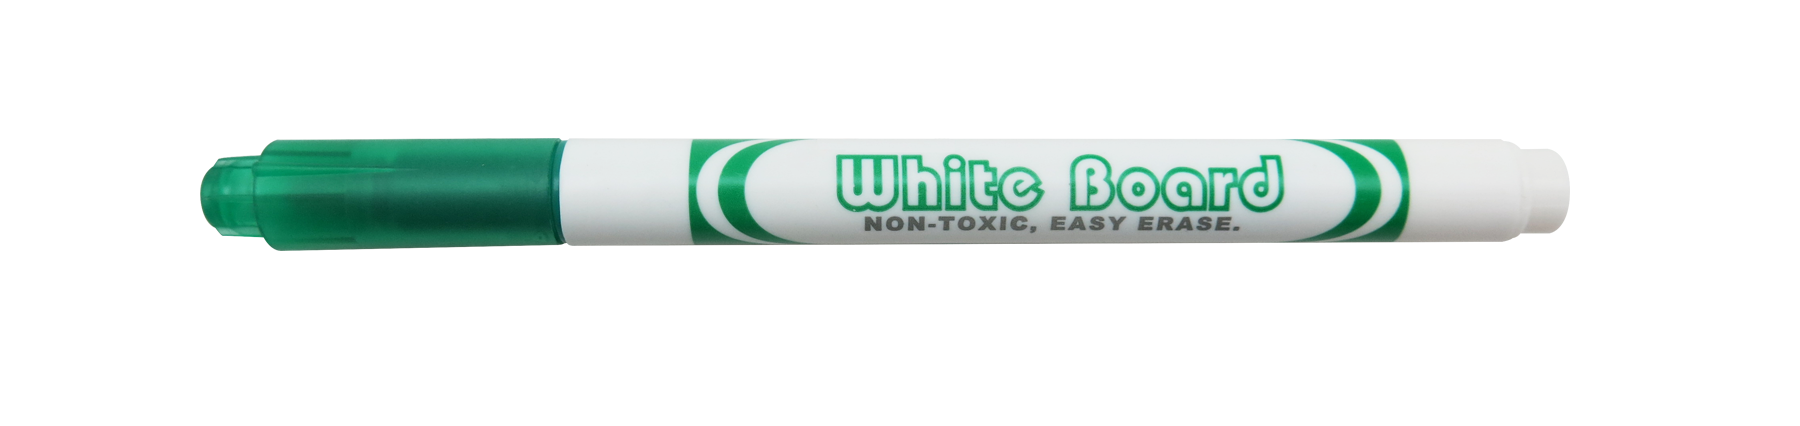 ES0230 Whiteboard Marker